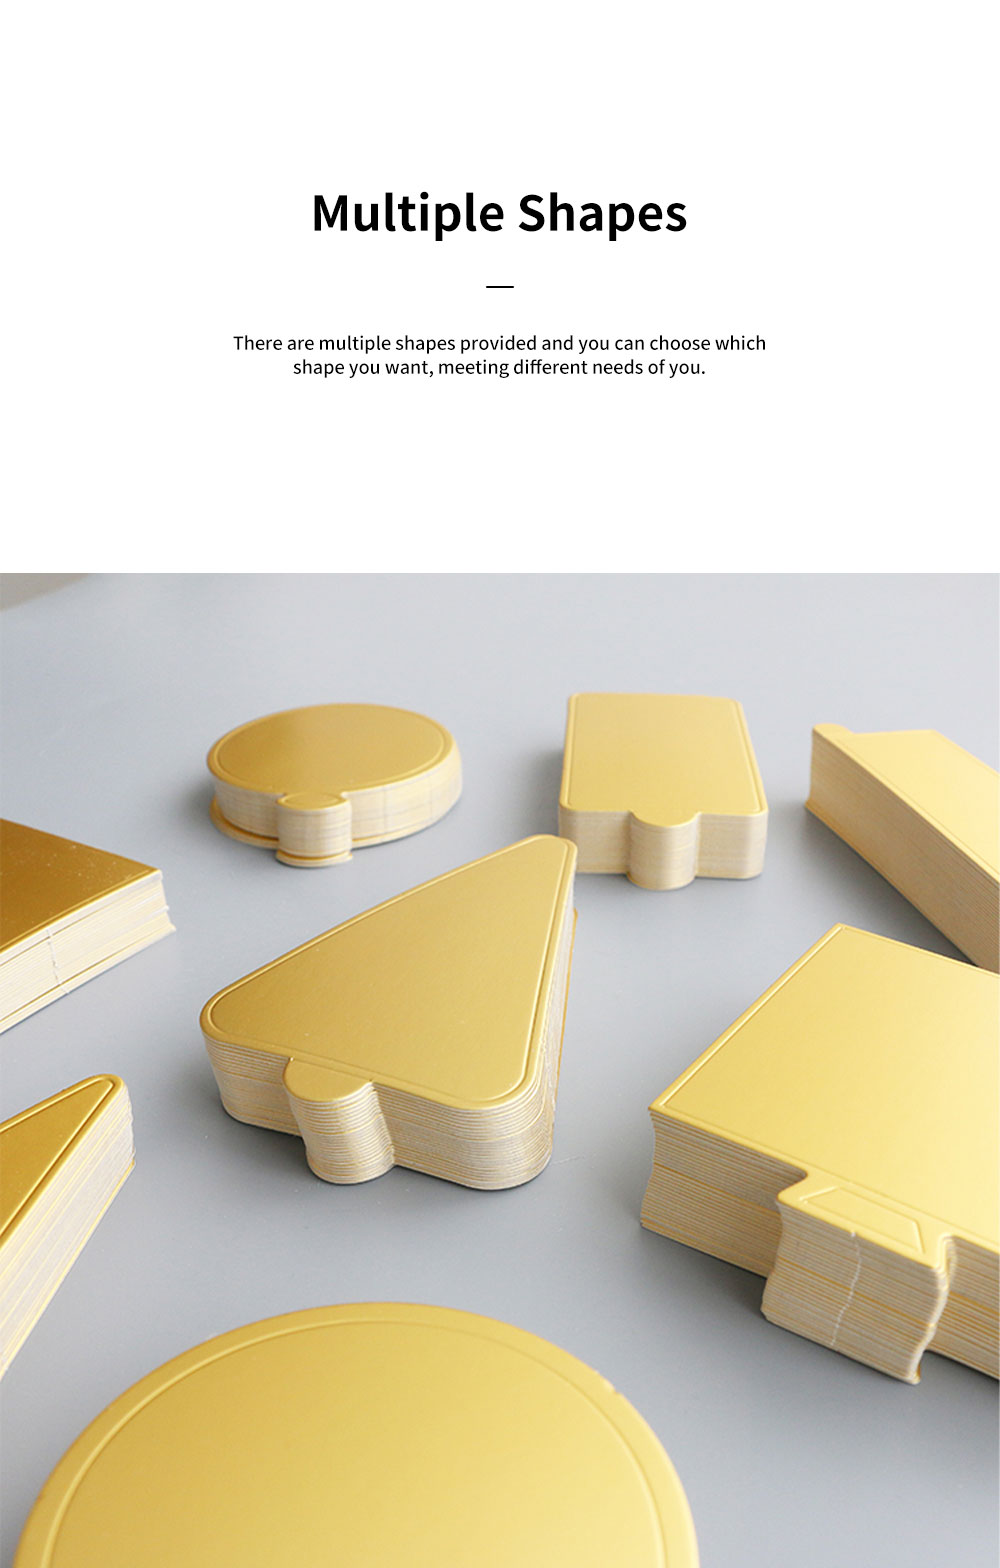 Delicate Golden Waterproof Non-toxic Mousse Cake Paper Pad Dessert Baking Accessories Round Square Triangle Rectangle 10PCS 3